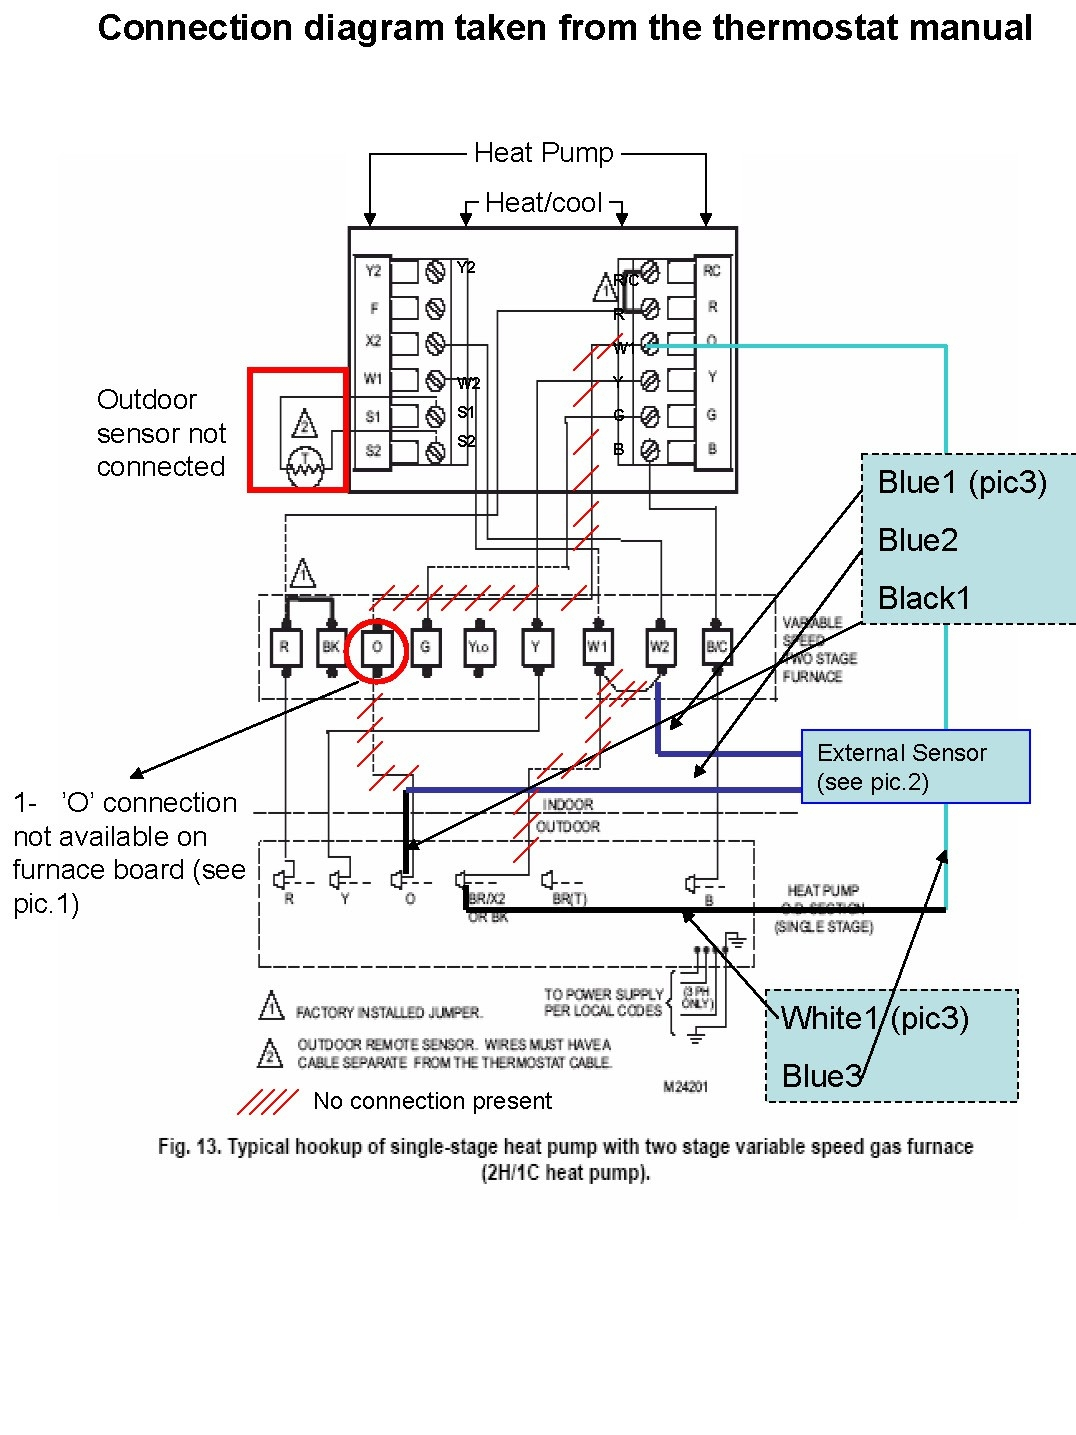 hight resolution of 2 stage heat 1 stage cool thermostat wiring diagram wiring diagram 2 stage thermostat wiring diagram